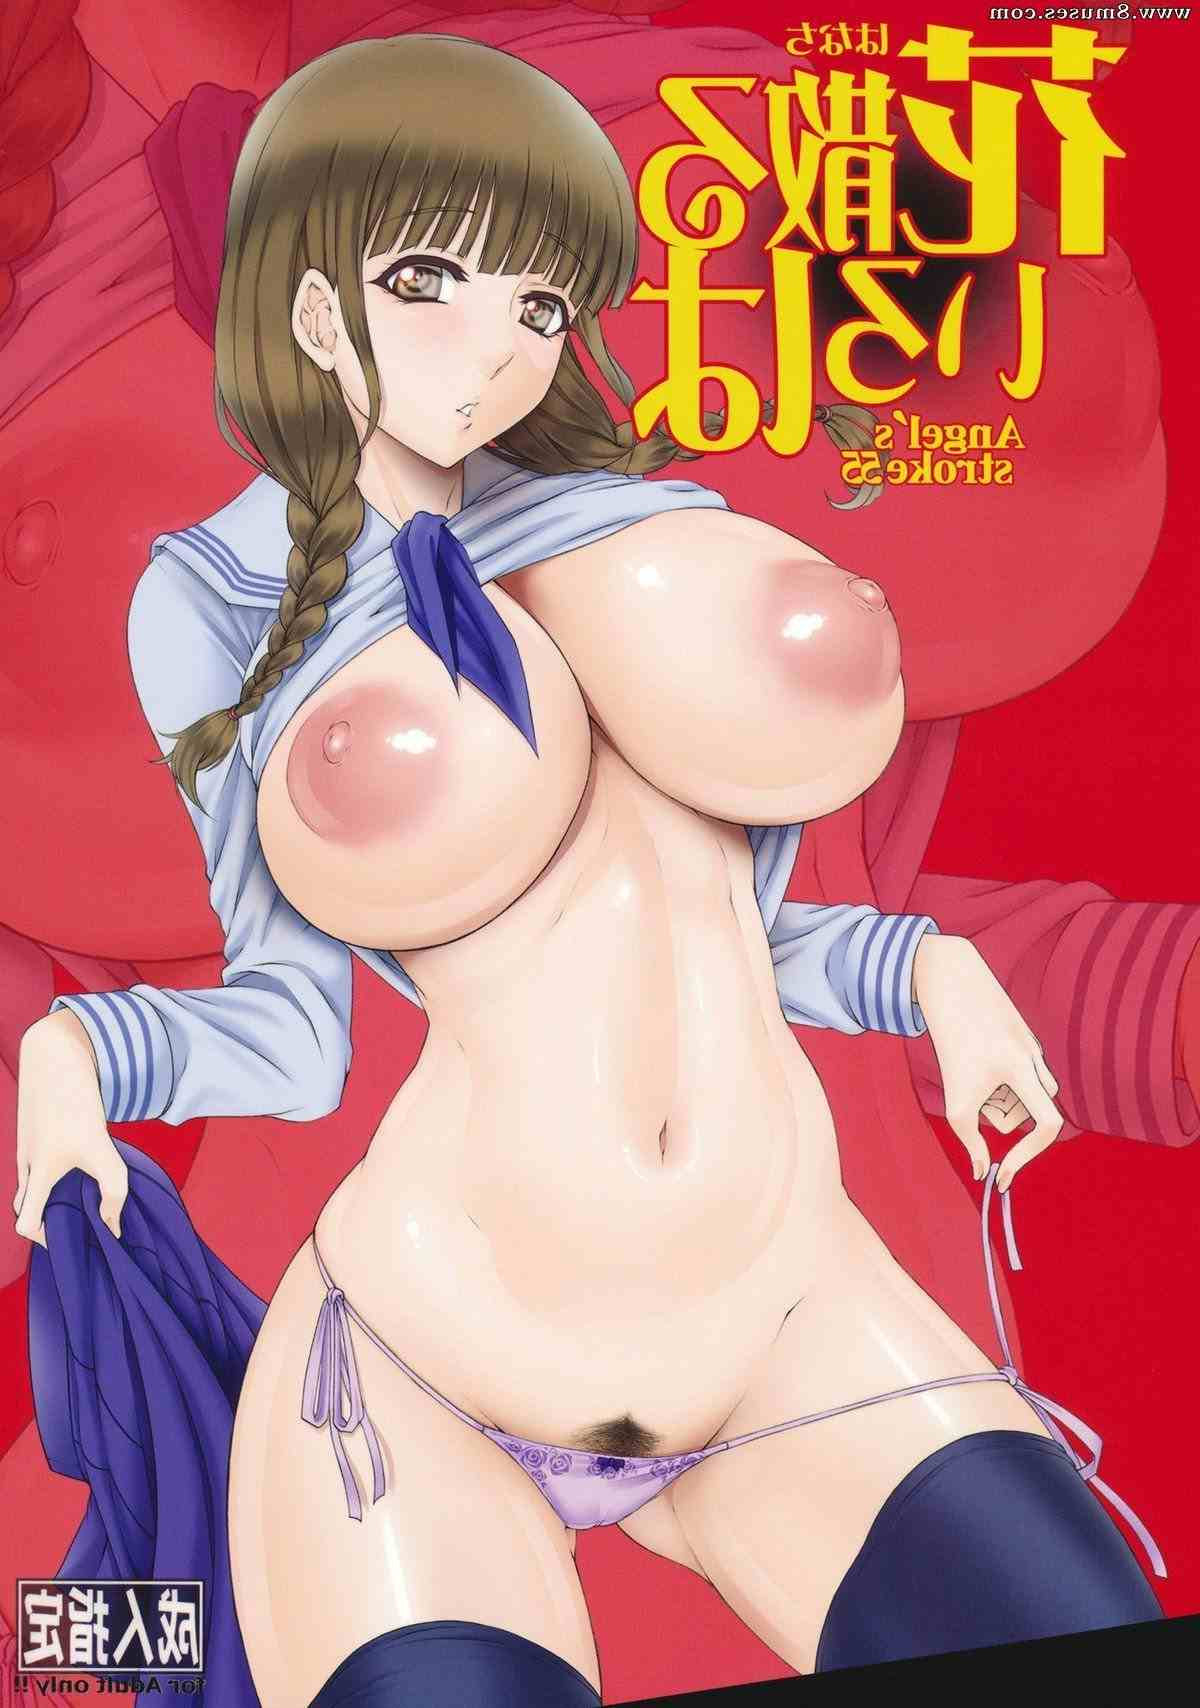 Hentai-and-Manga-English/Kutani/Manga Manga__8muses_-_Sex_and_Porn_Comics_6.jpg